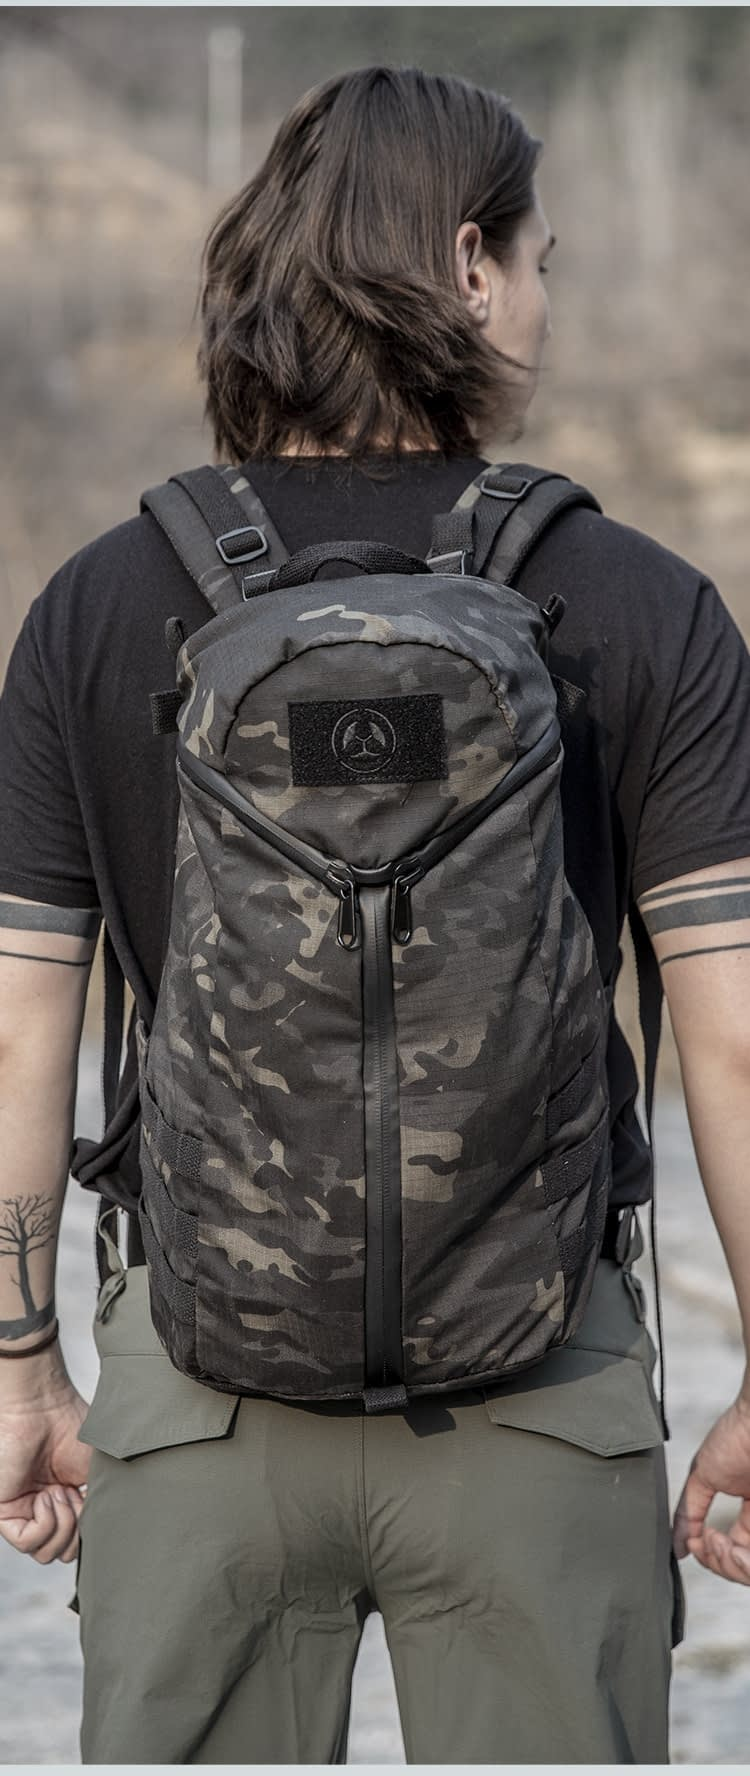 Tactical Lightweight Camo Backpack Army Fan Combat Training Military Bag Outdoor Hiking Travel Large Capacity Desert Rucksack